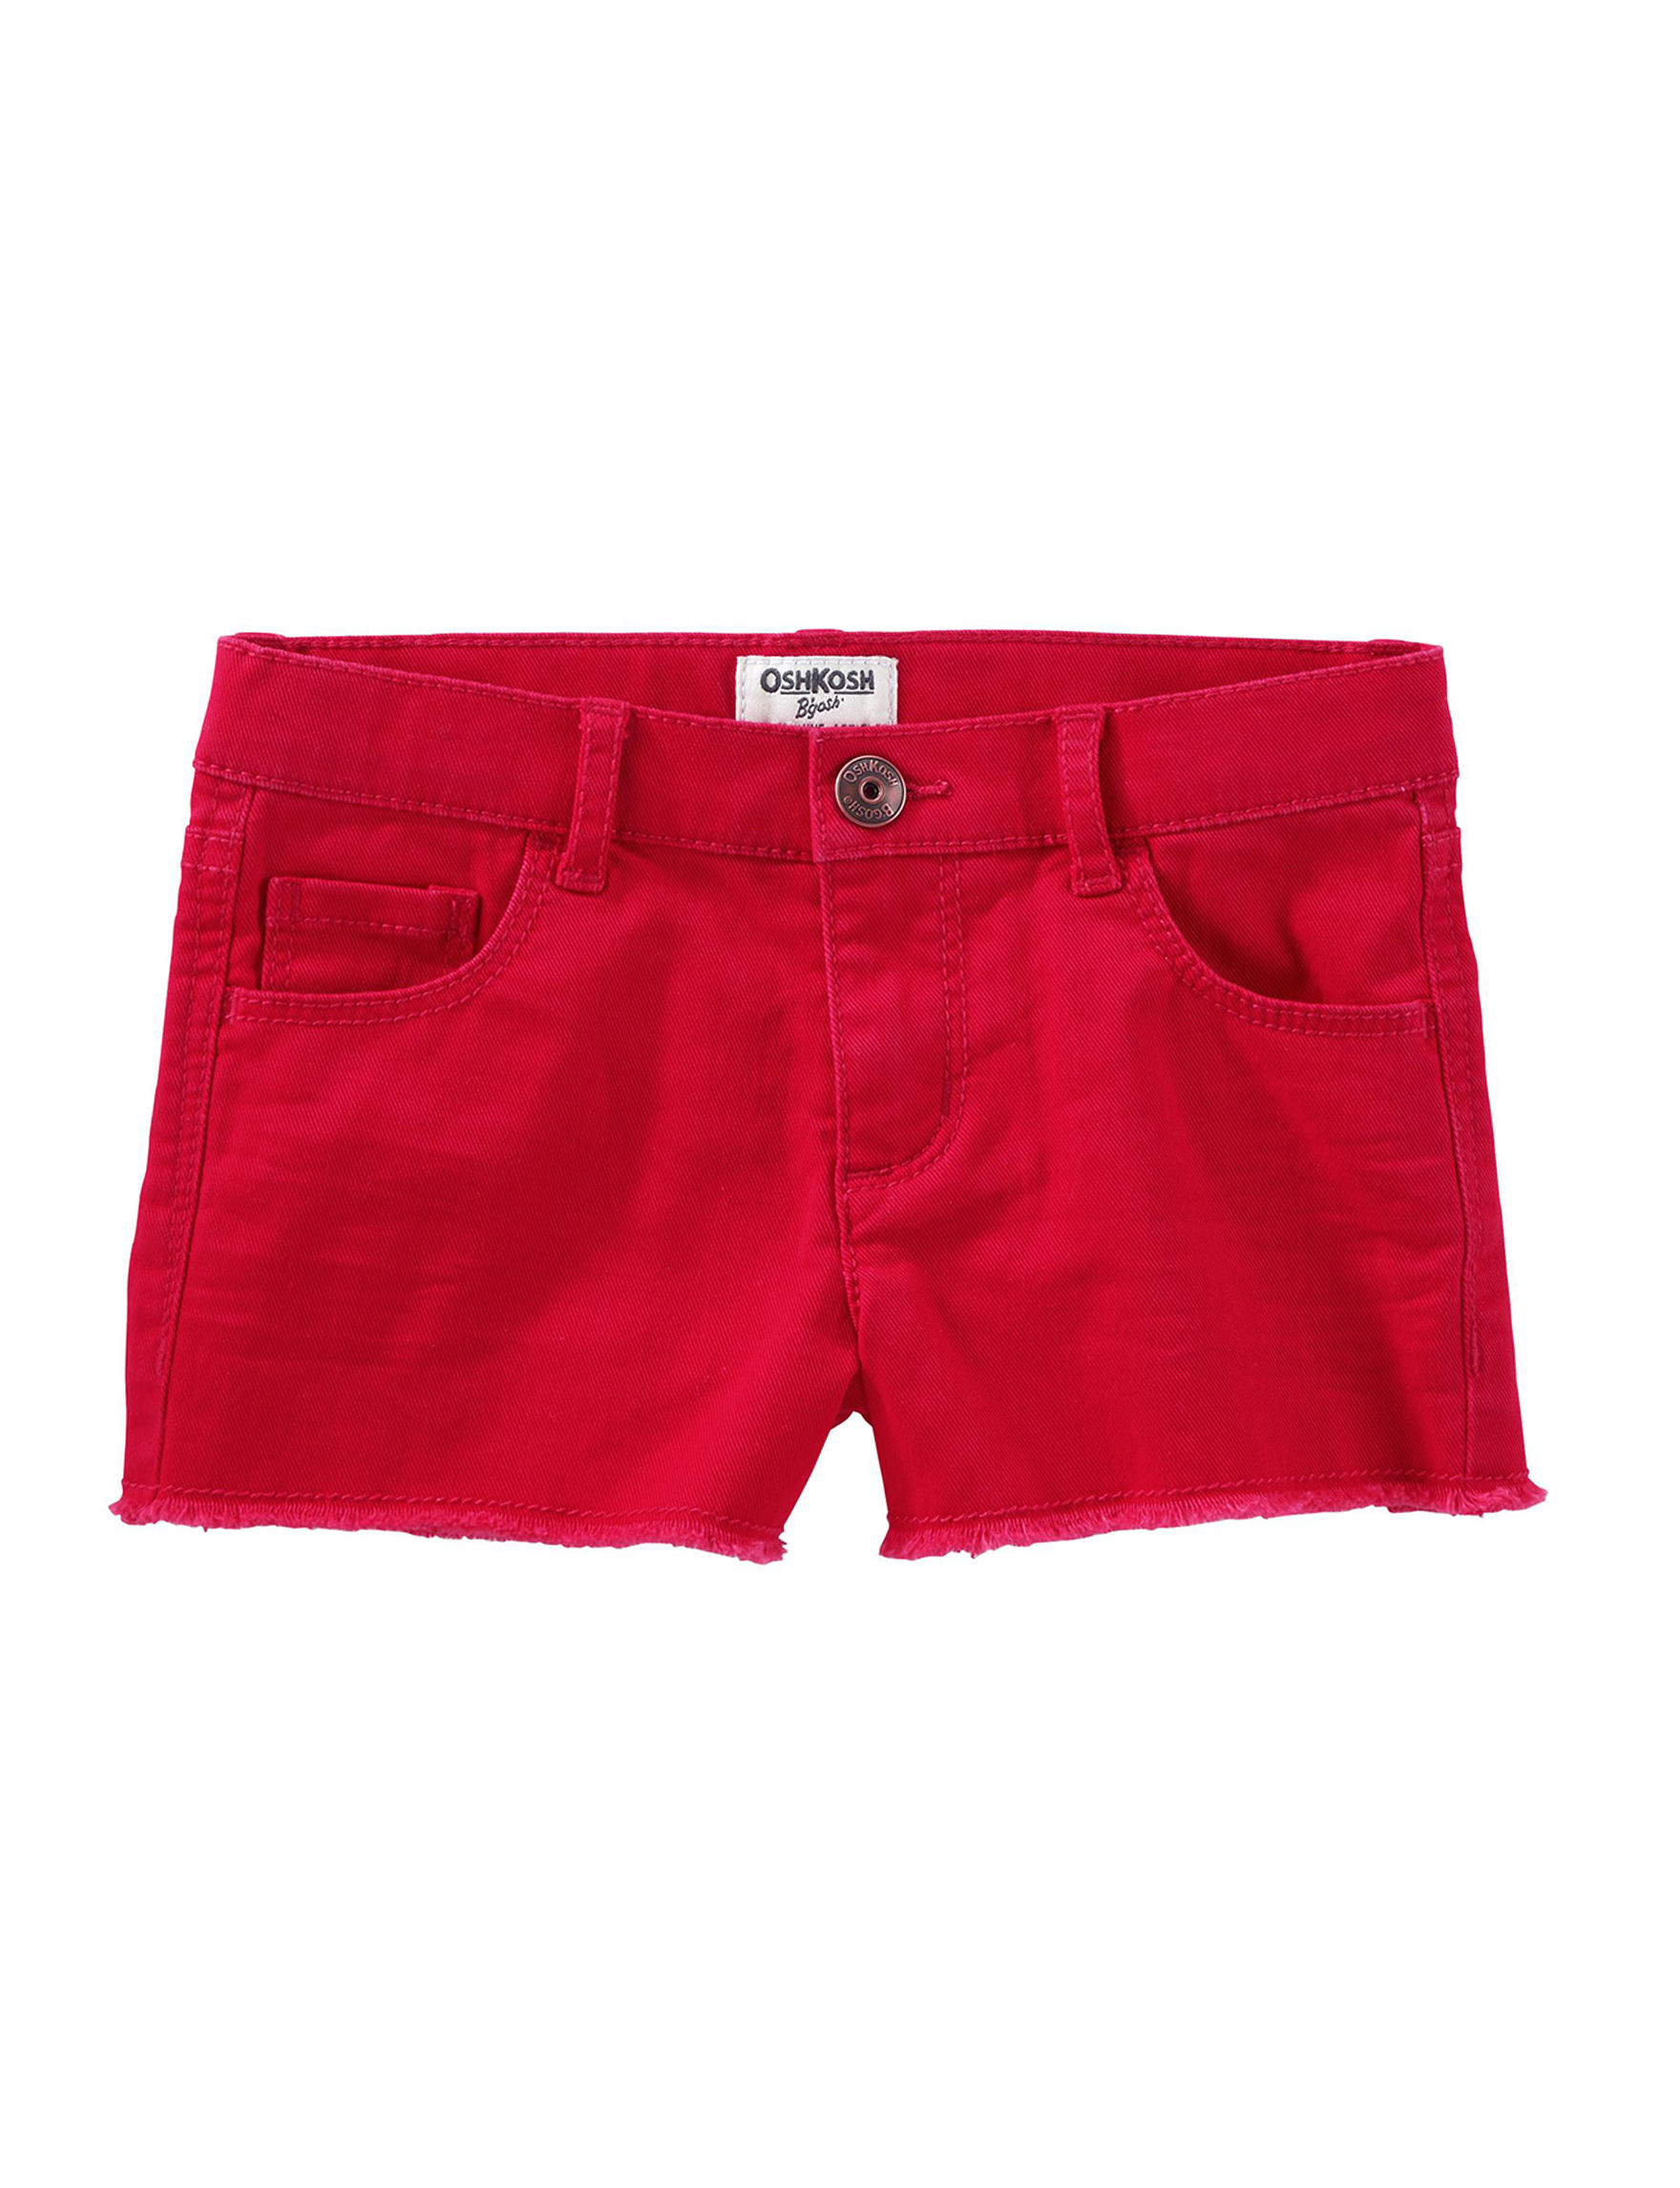 Oshkosh B'Gosh Red Relaxed